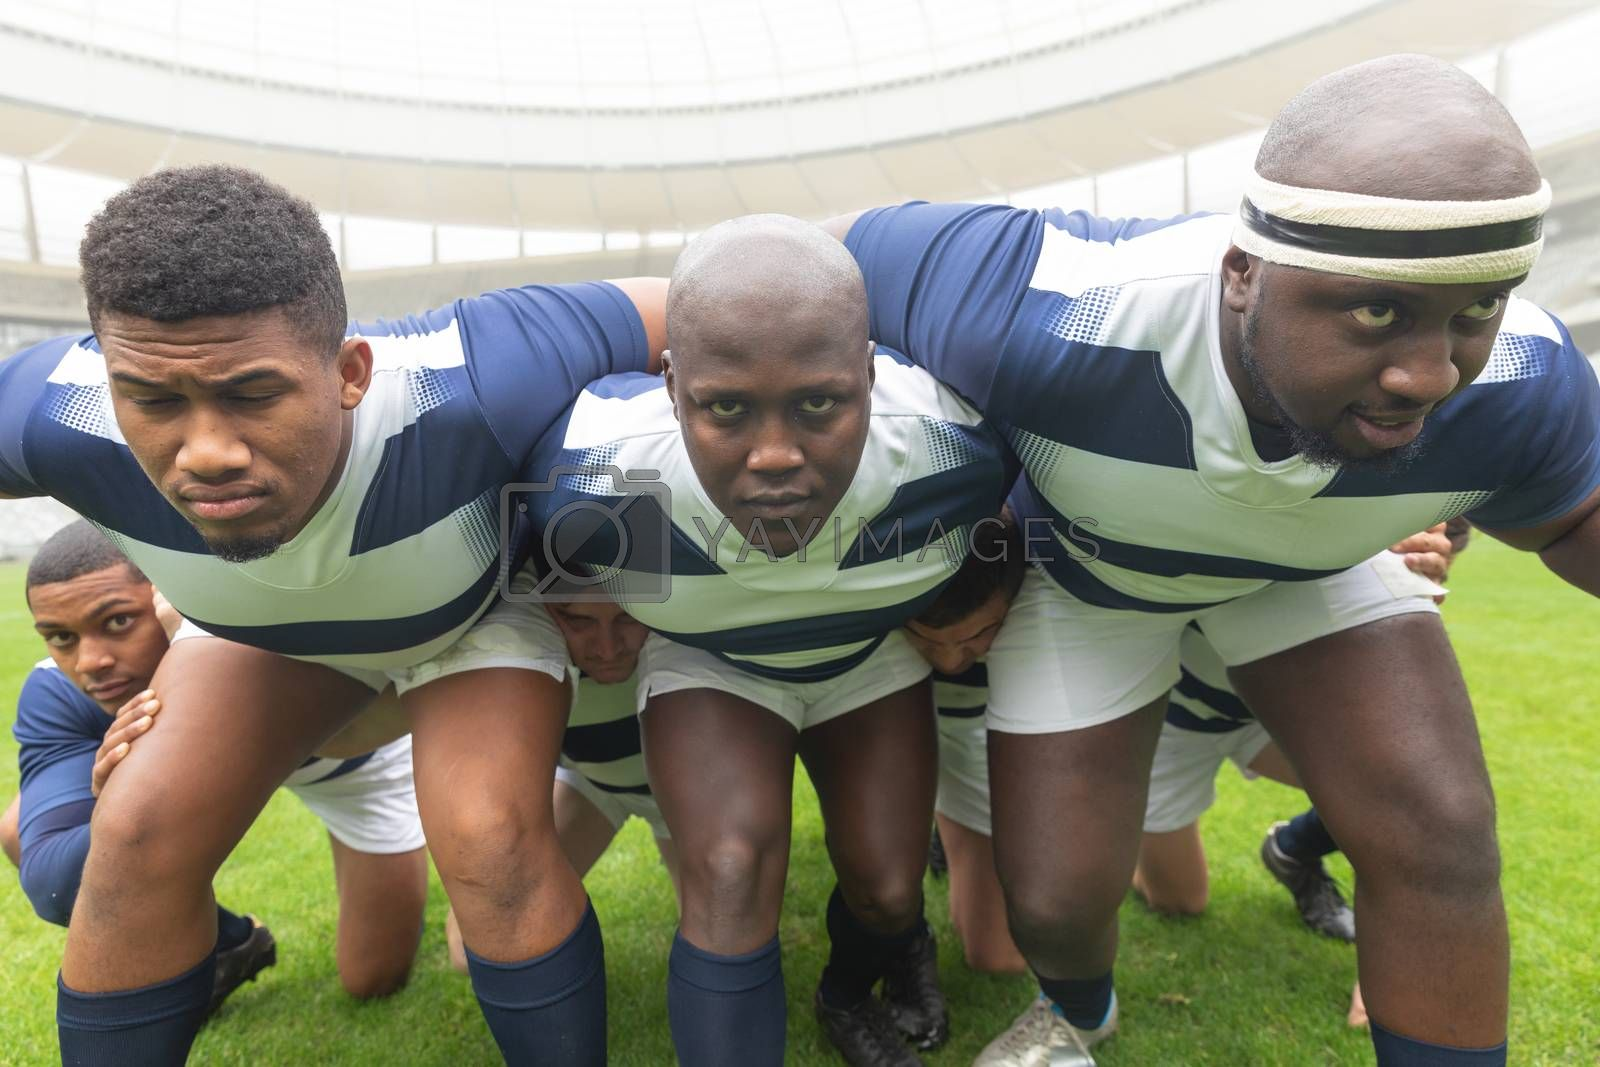 Front view of group of diverse male rugby player ready to play rugby match in stadium